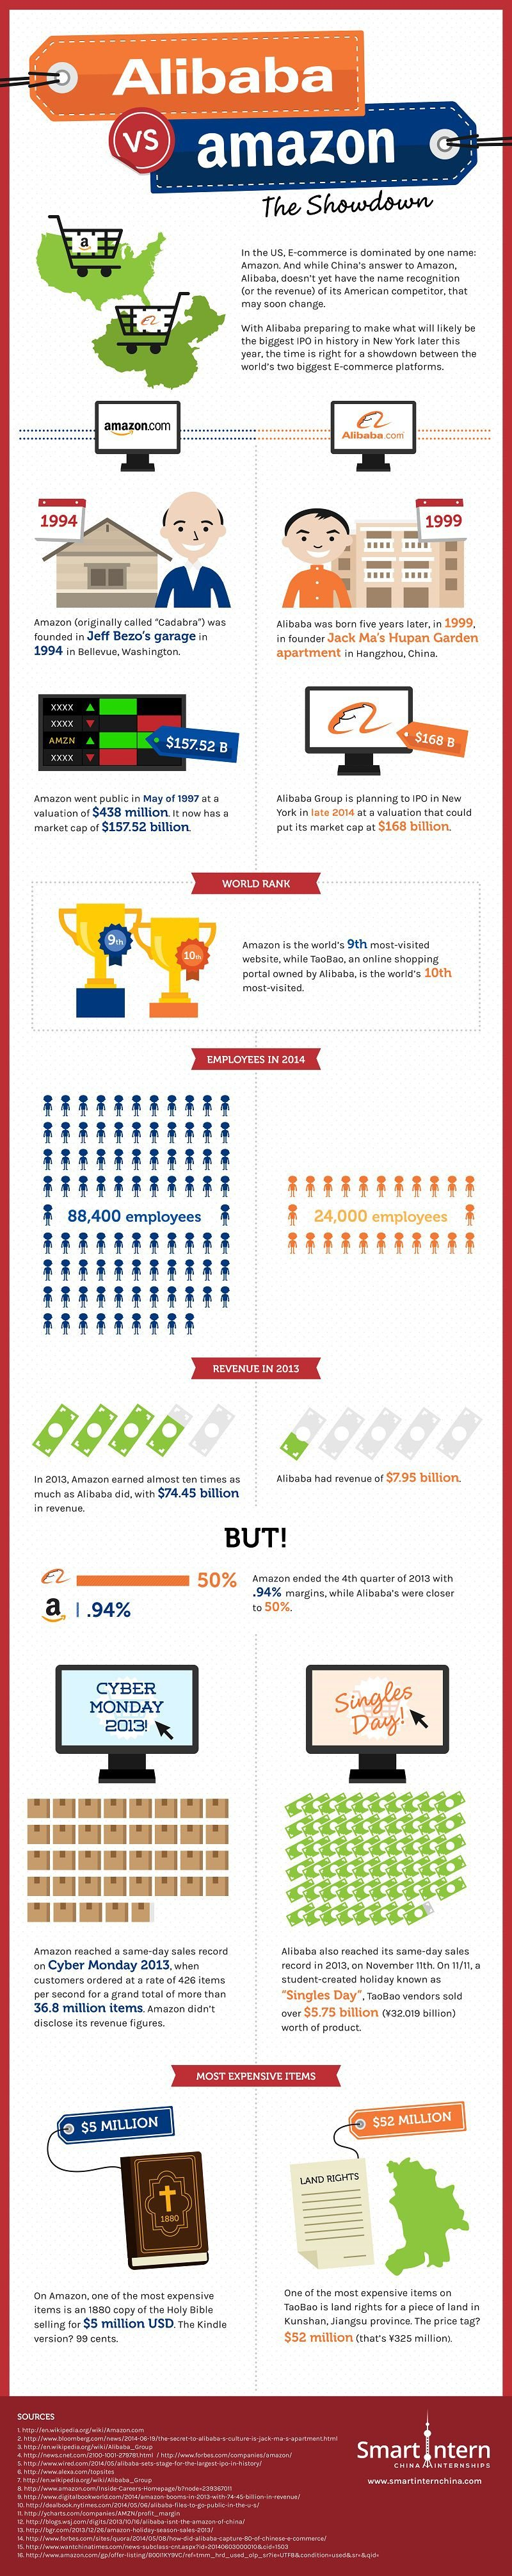 alibaba_vs_amazon_infographic_small__reduced_high_res (1)